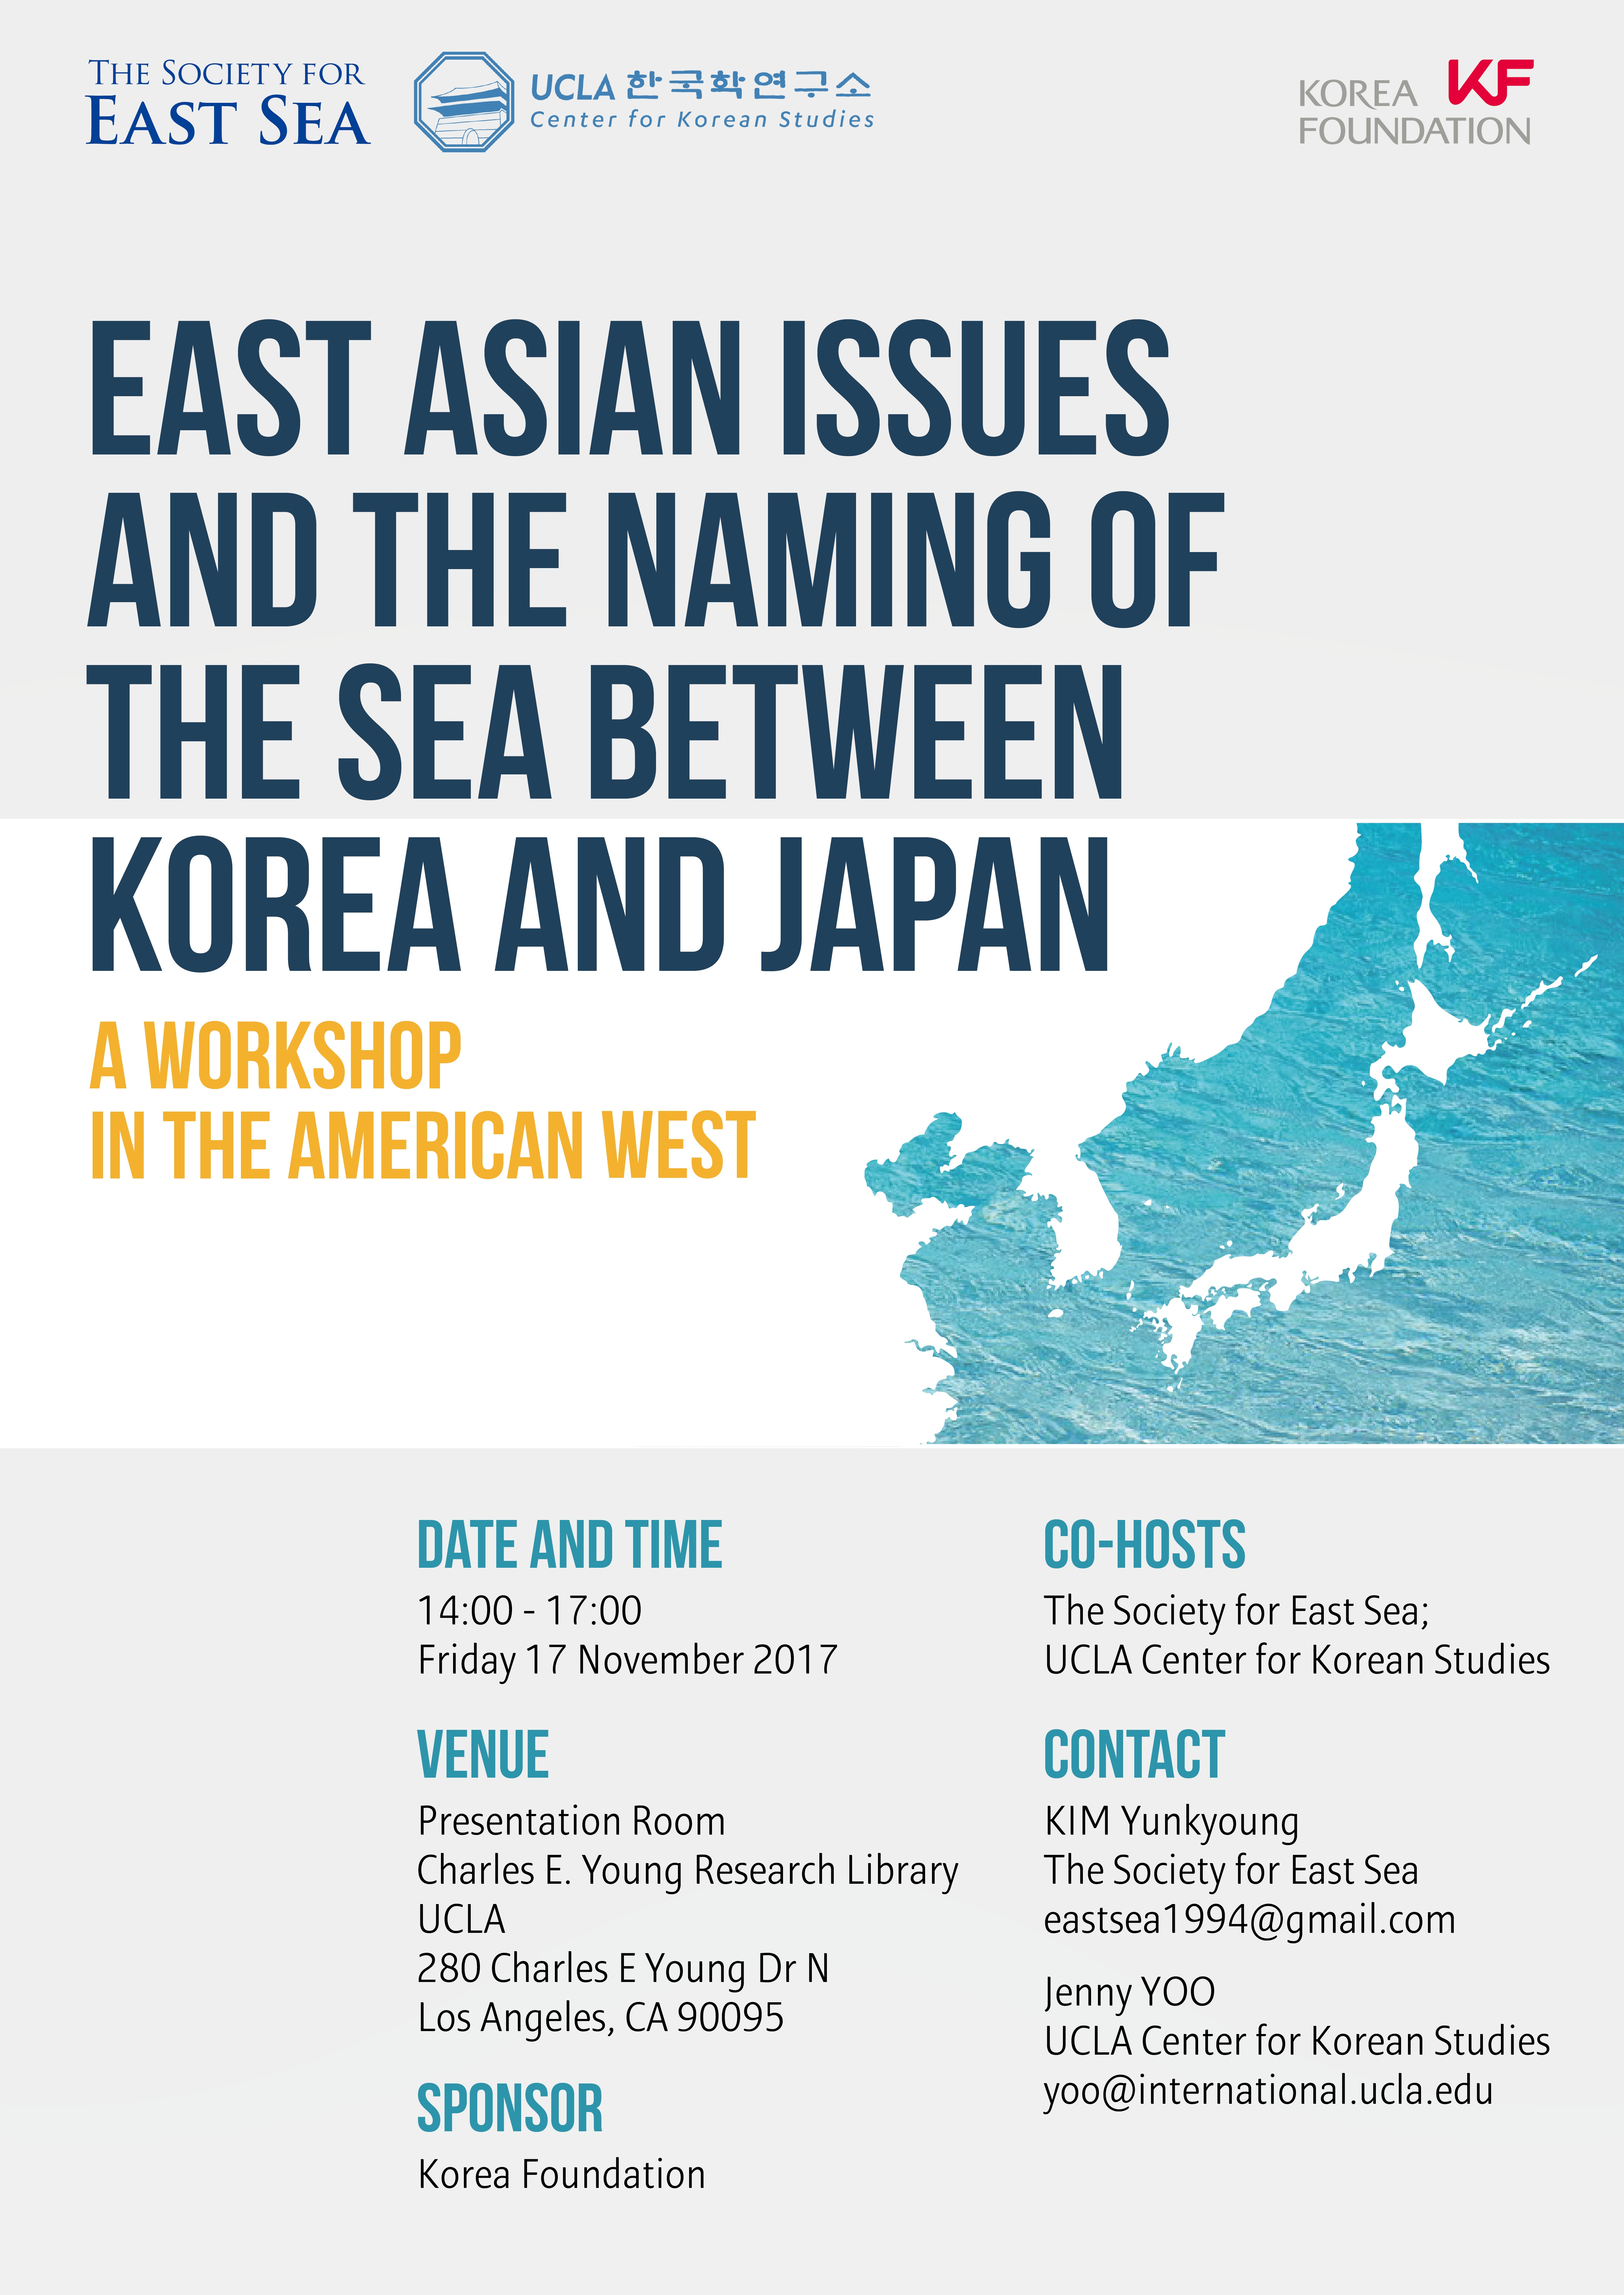 East Asian Issues and the Naming of the Sea Between Korea and Japan